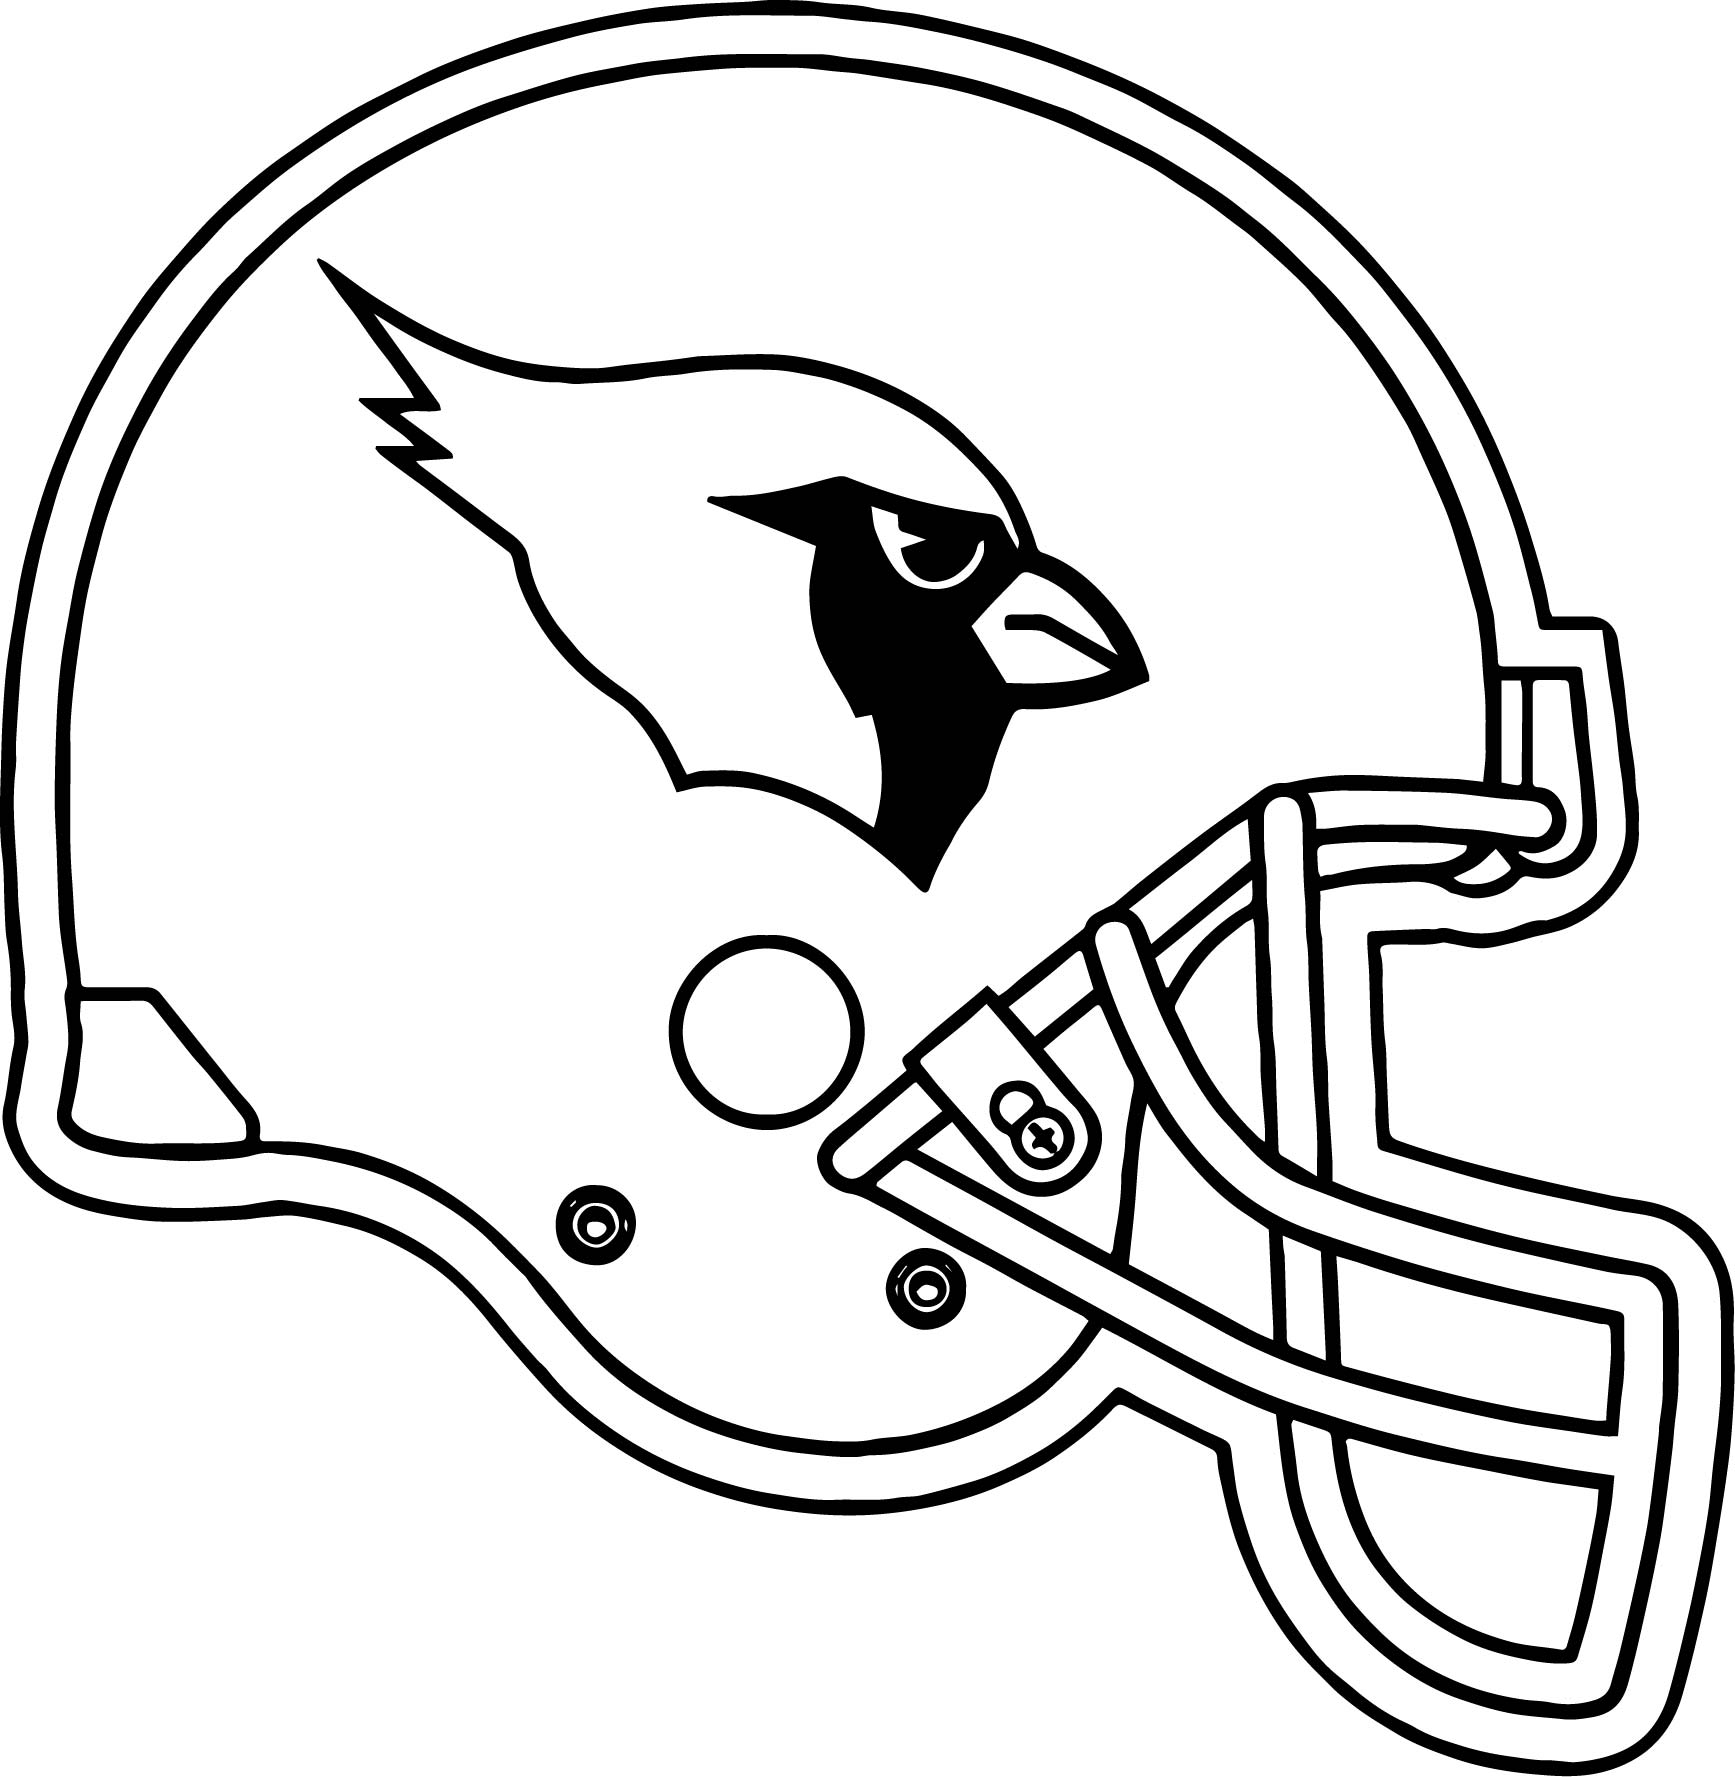 az cardinals coloring pages - photo #30